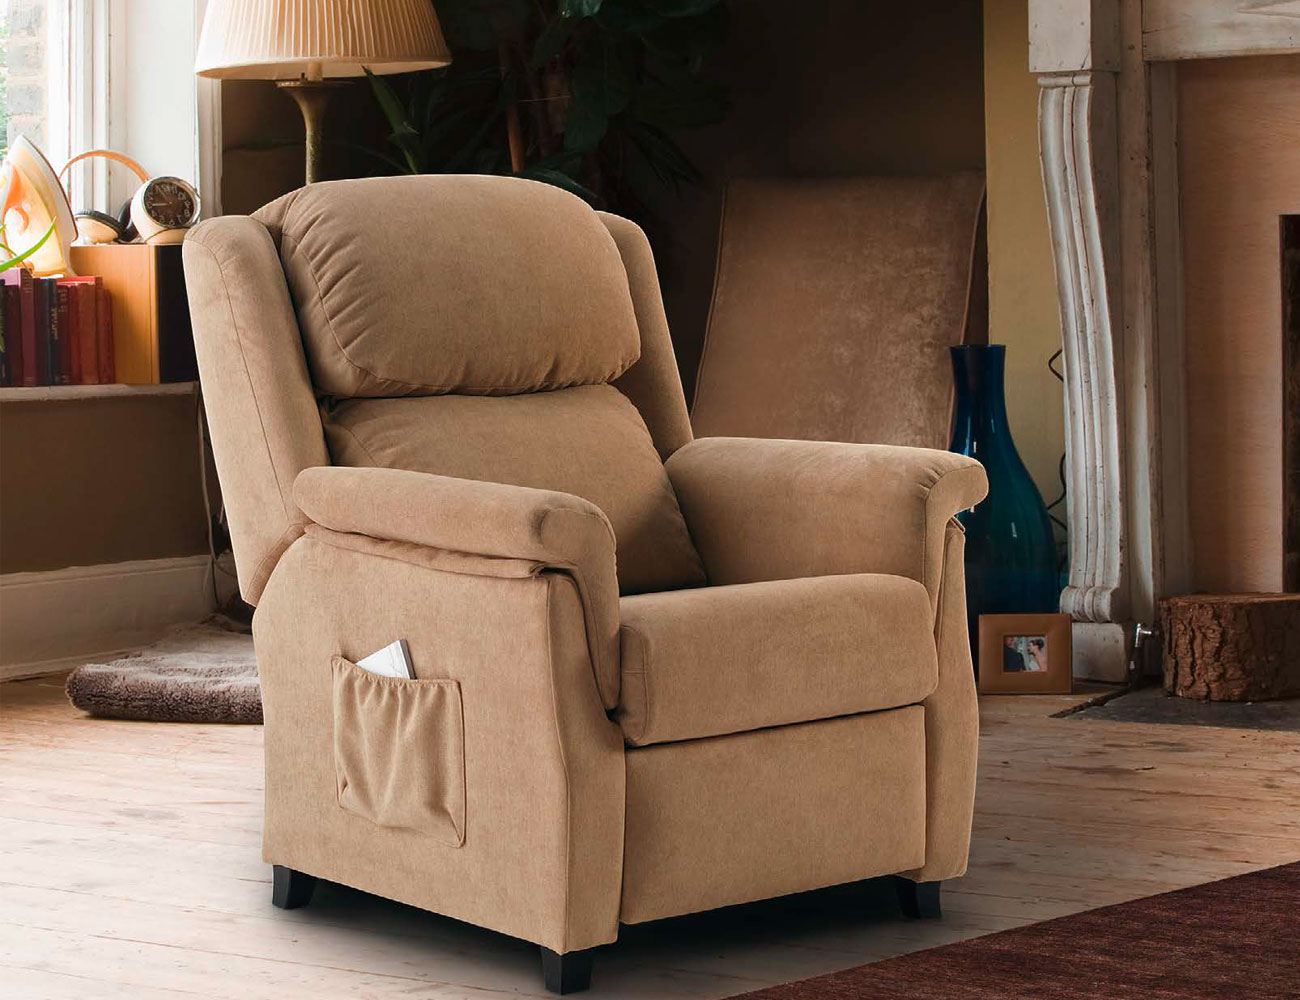 Sillon relax manual bianca 12